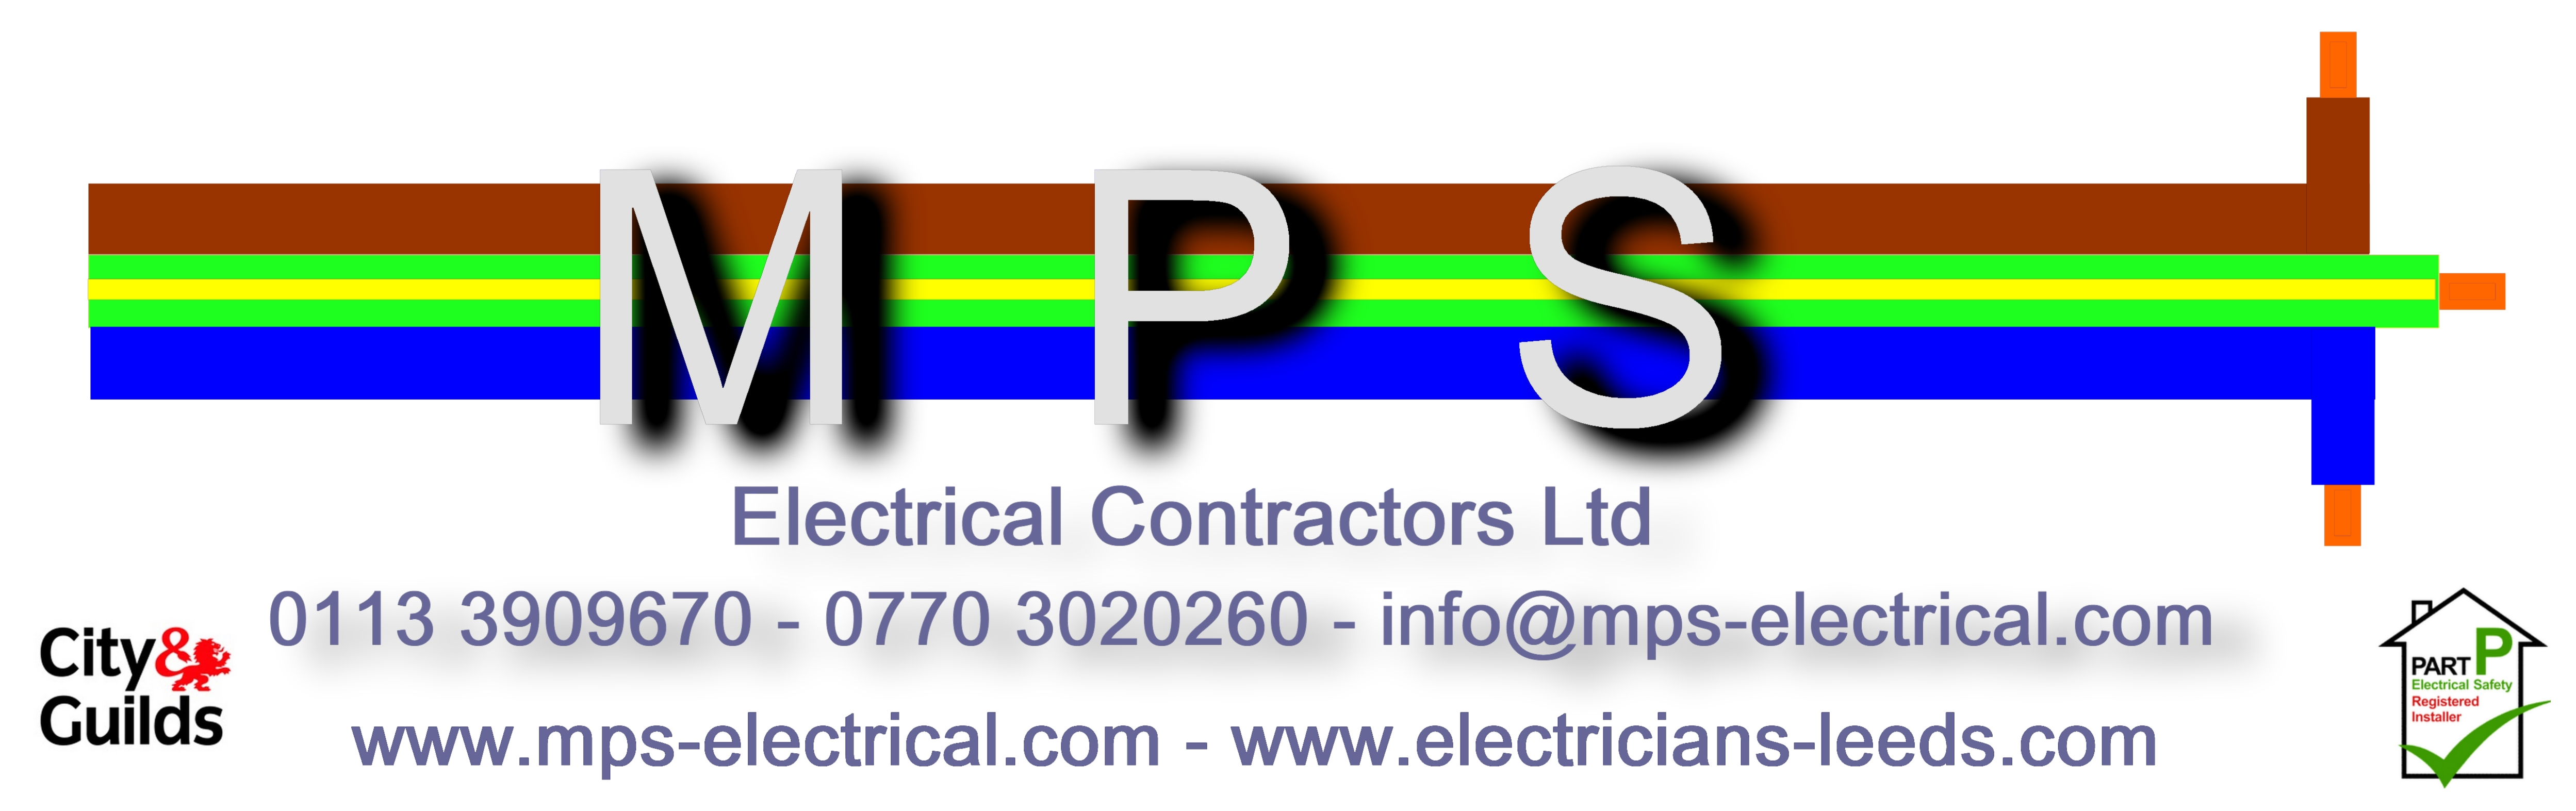 Electrician Leeds MPS Electrical Ltd